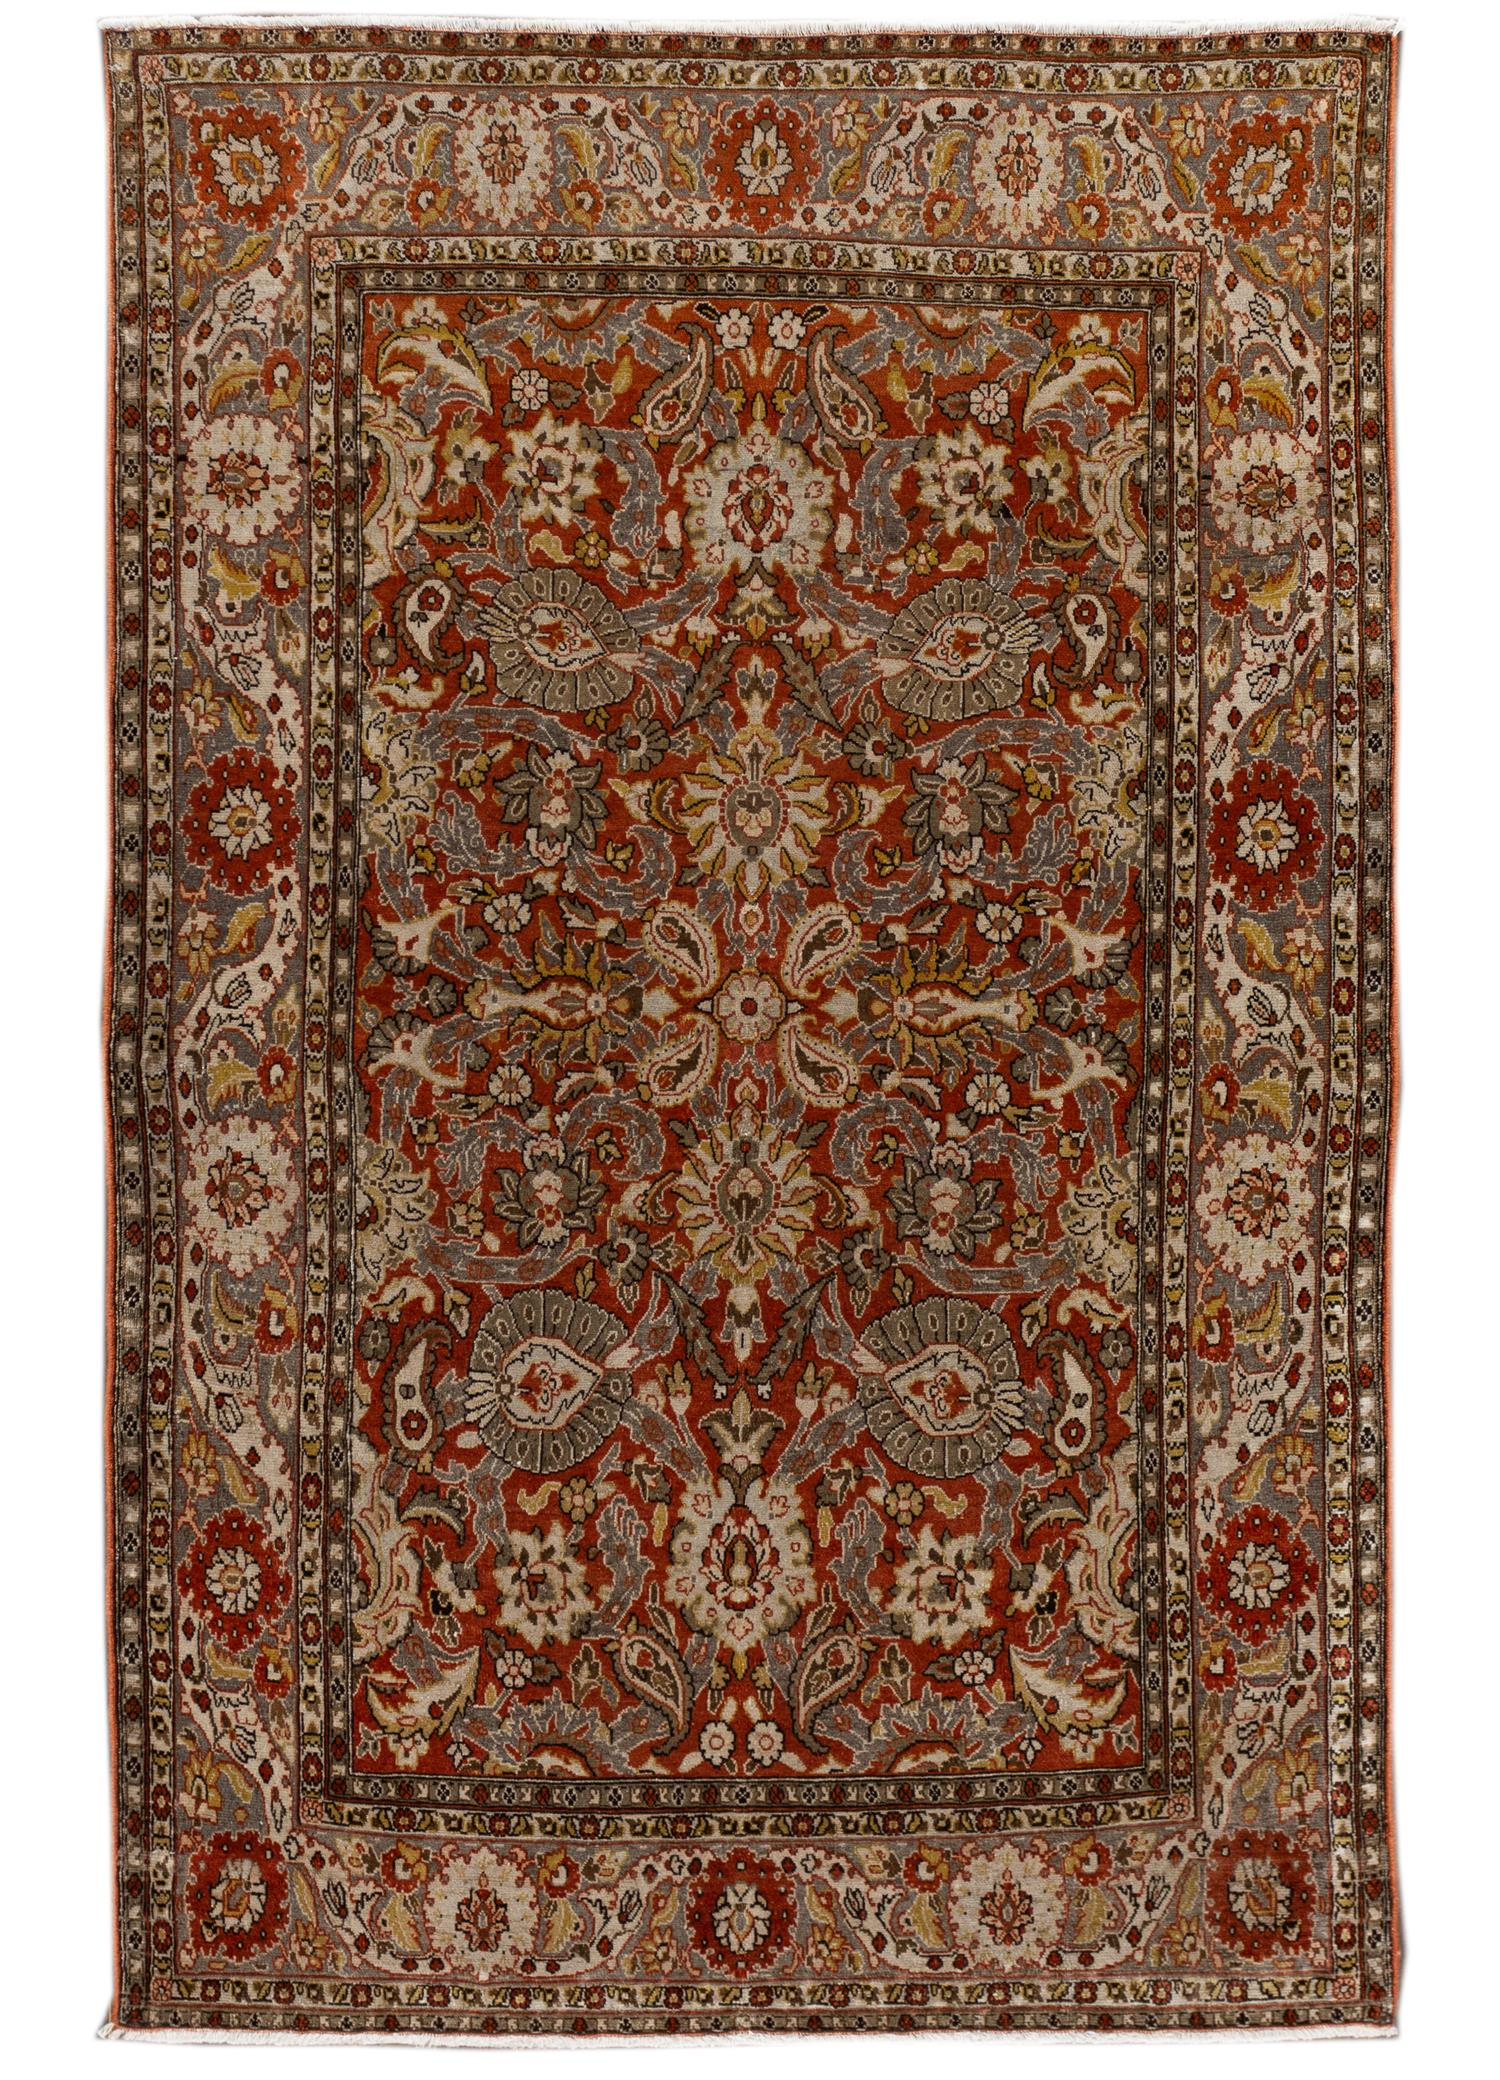 Antique Malayer Rug, #10235256, 4X7